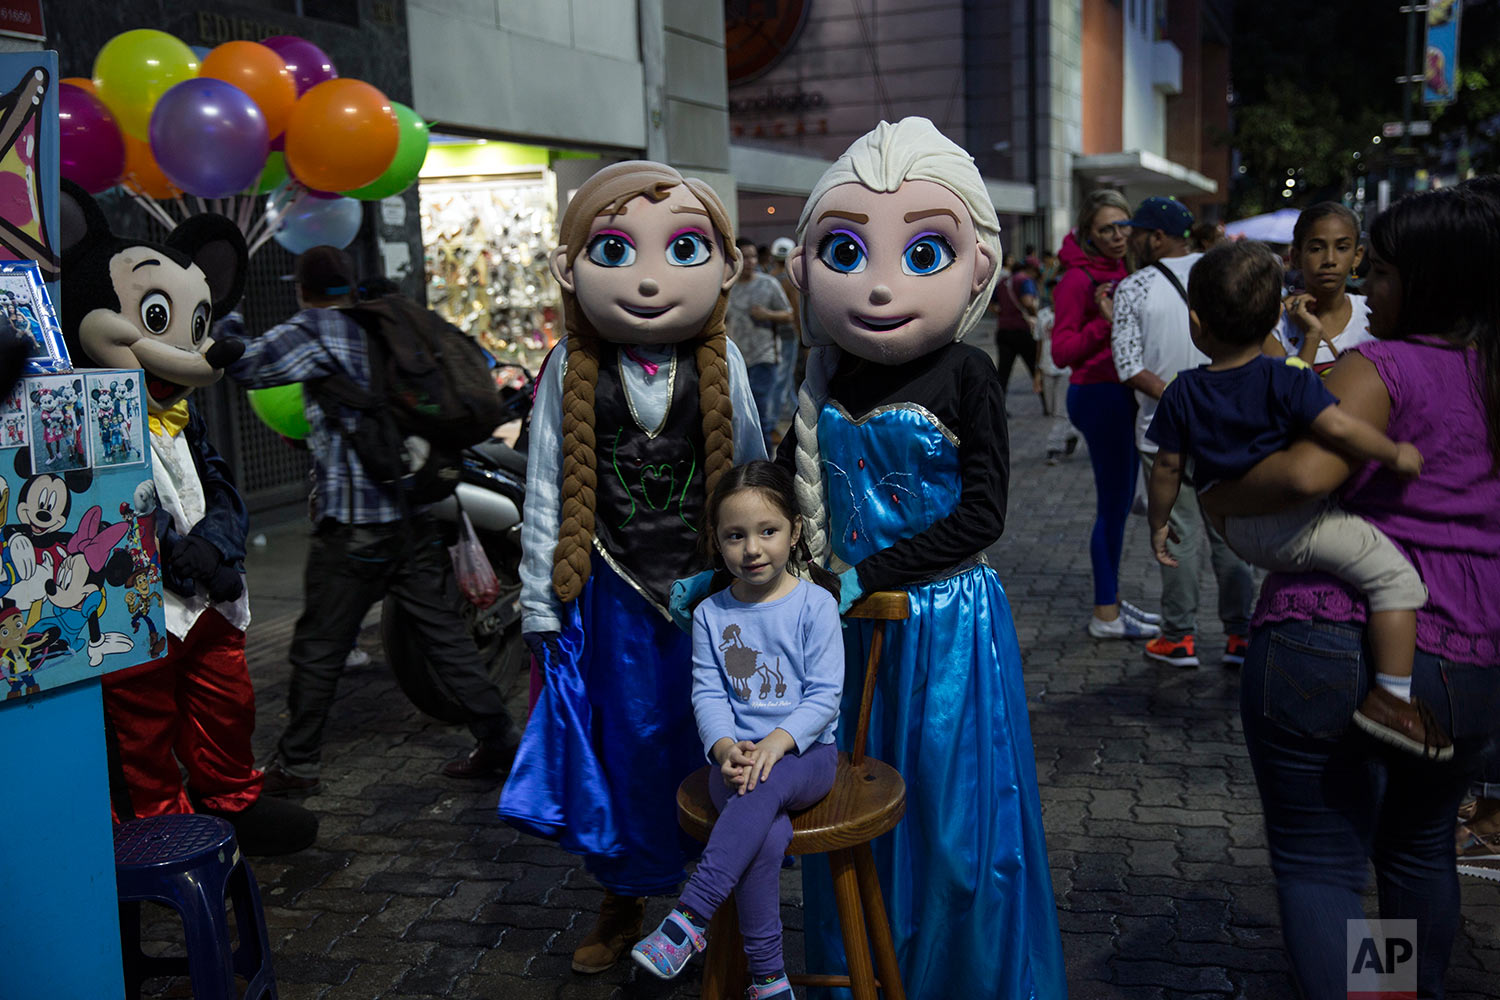 A girl sits next to Disney characters after a street photographer took her photo in downtown Caracas, Venezuela, Saturday, Oct. 21, 2017. (AP Photo/Rodrigo Abd)